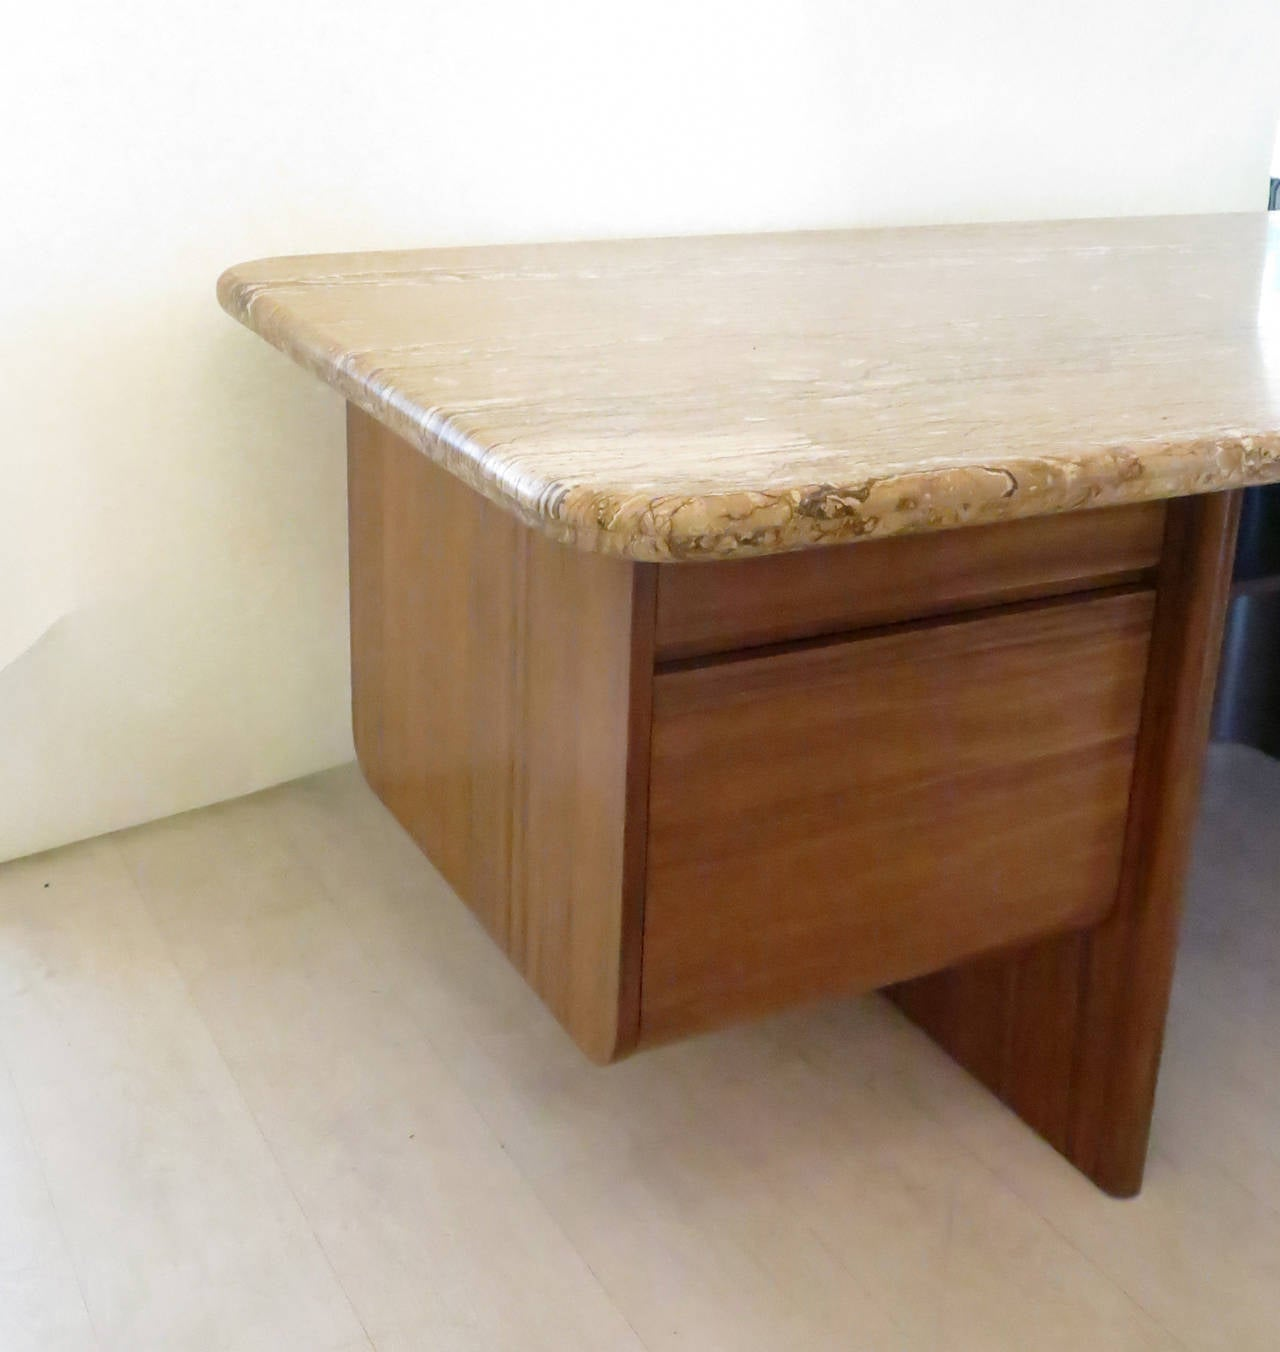 Marble-Top Executive Desk by Vladimir Kagan For Sale at ...